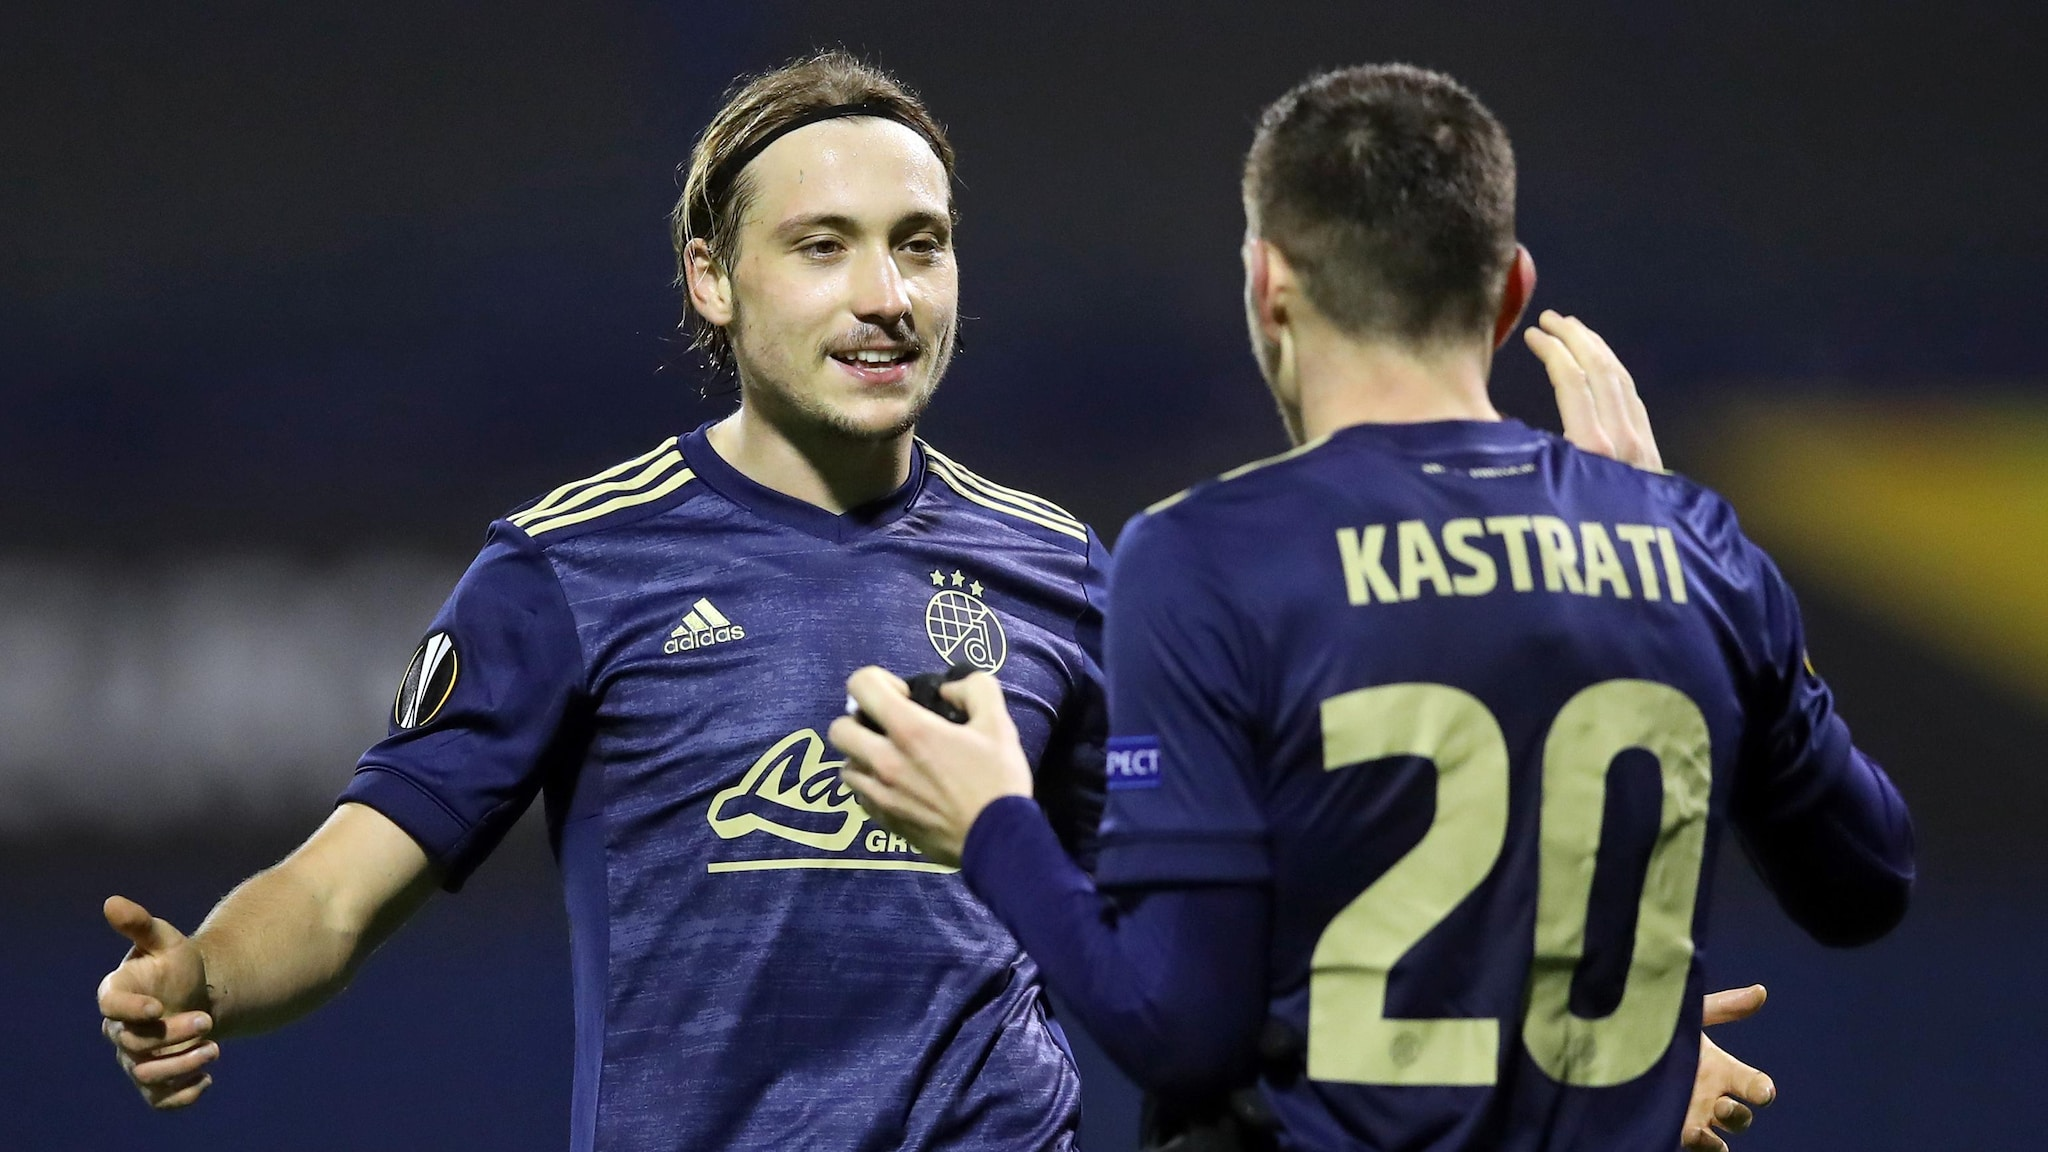 All The Latest Dinamo Zagreb News And Stories Sportbible